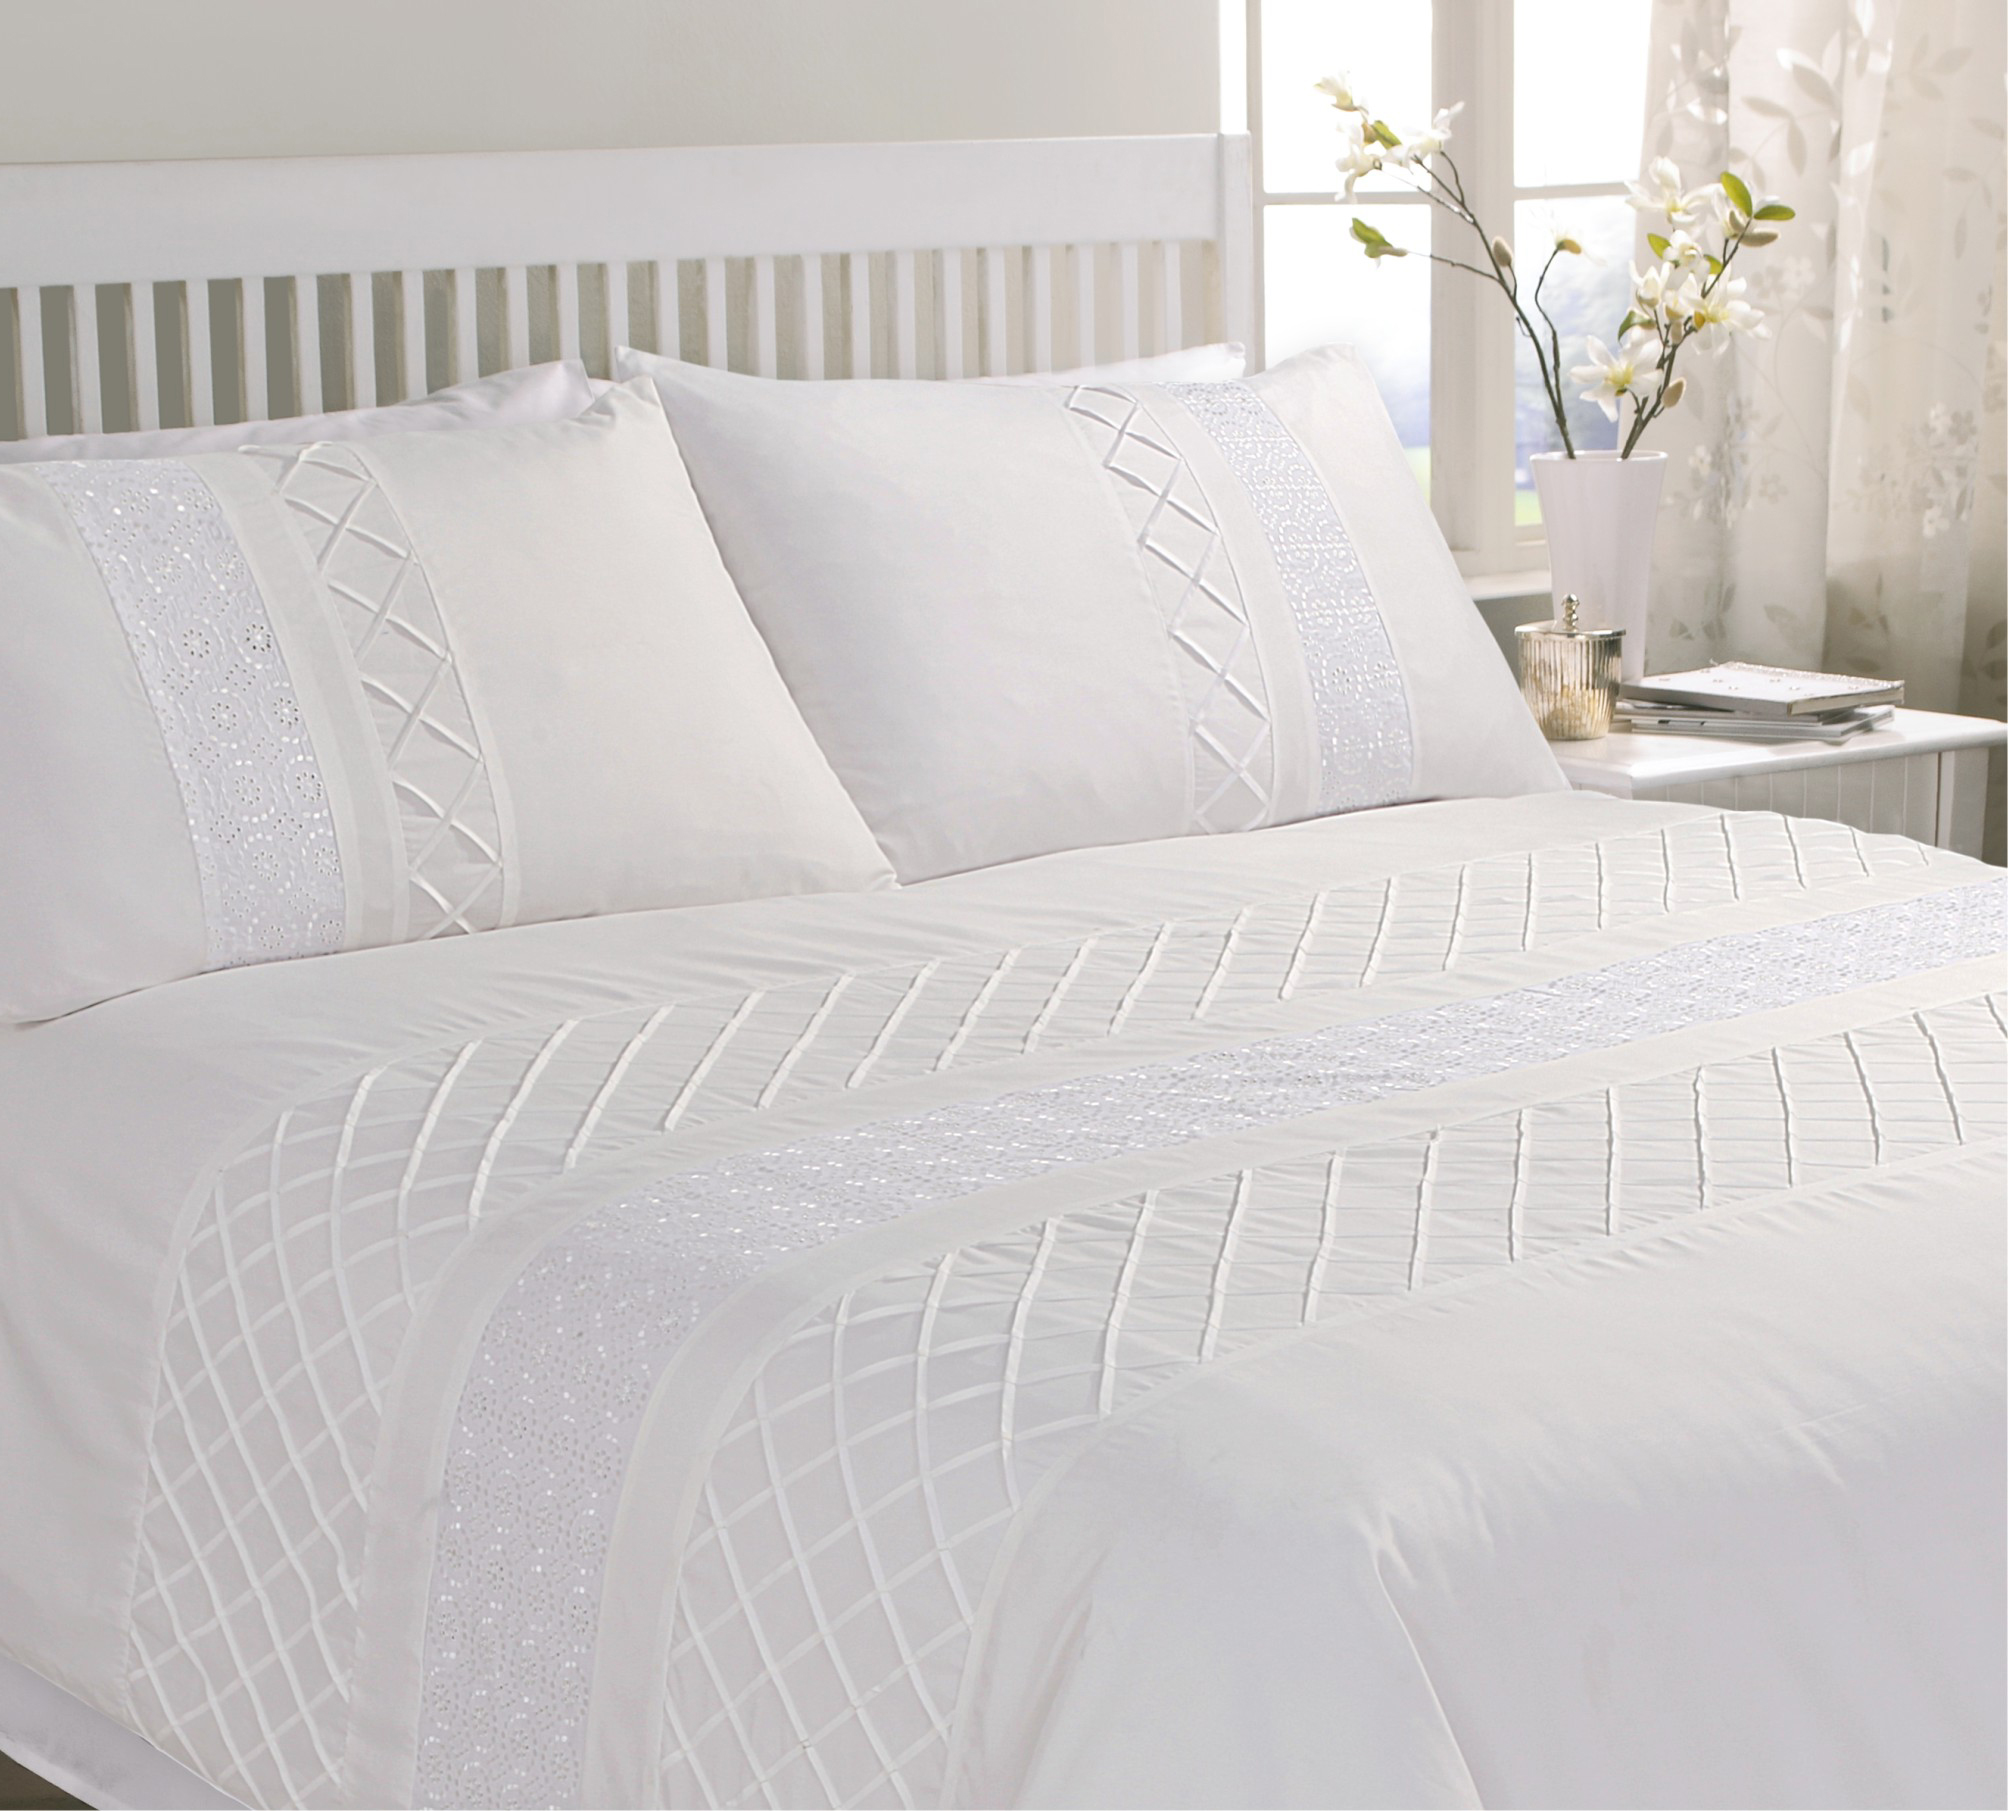 White Duvet Cover Set | Urban Outfitters Comforters | White Duvet Cover